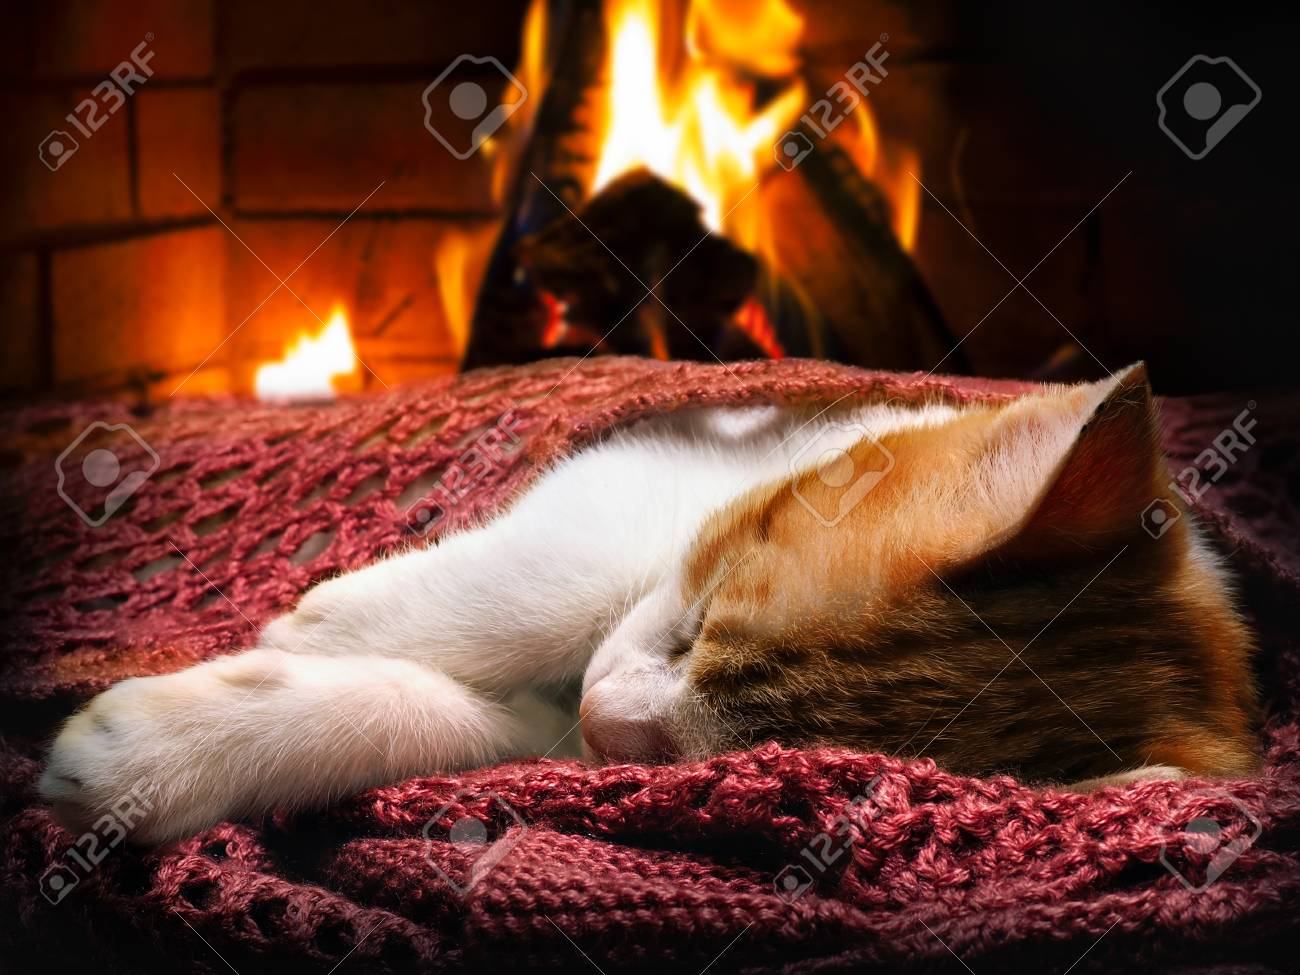 Sleeping kitten, fireplace, fire. Cat-a symbol of comfort, warmth, tranquility in the home - 70536001